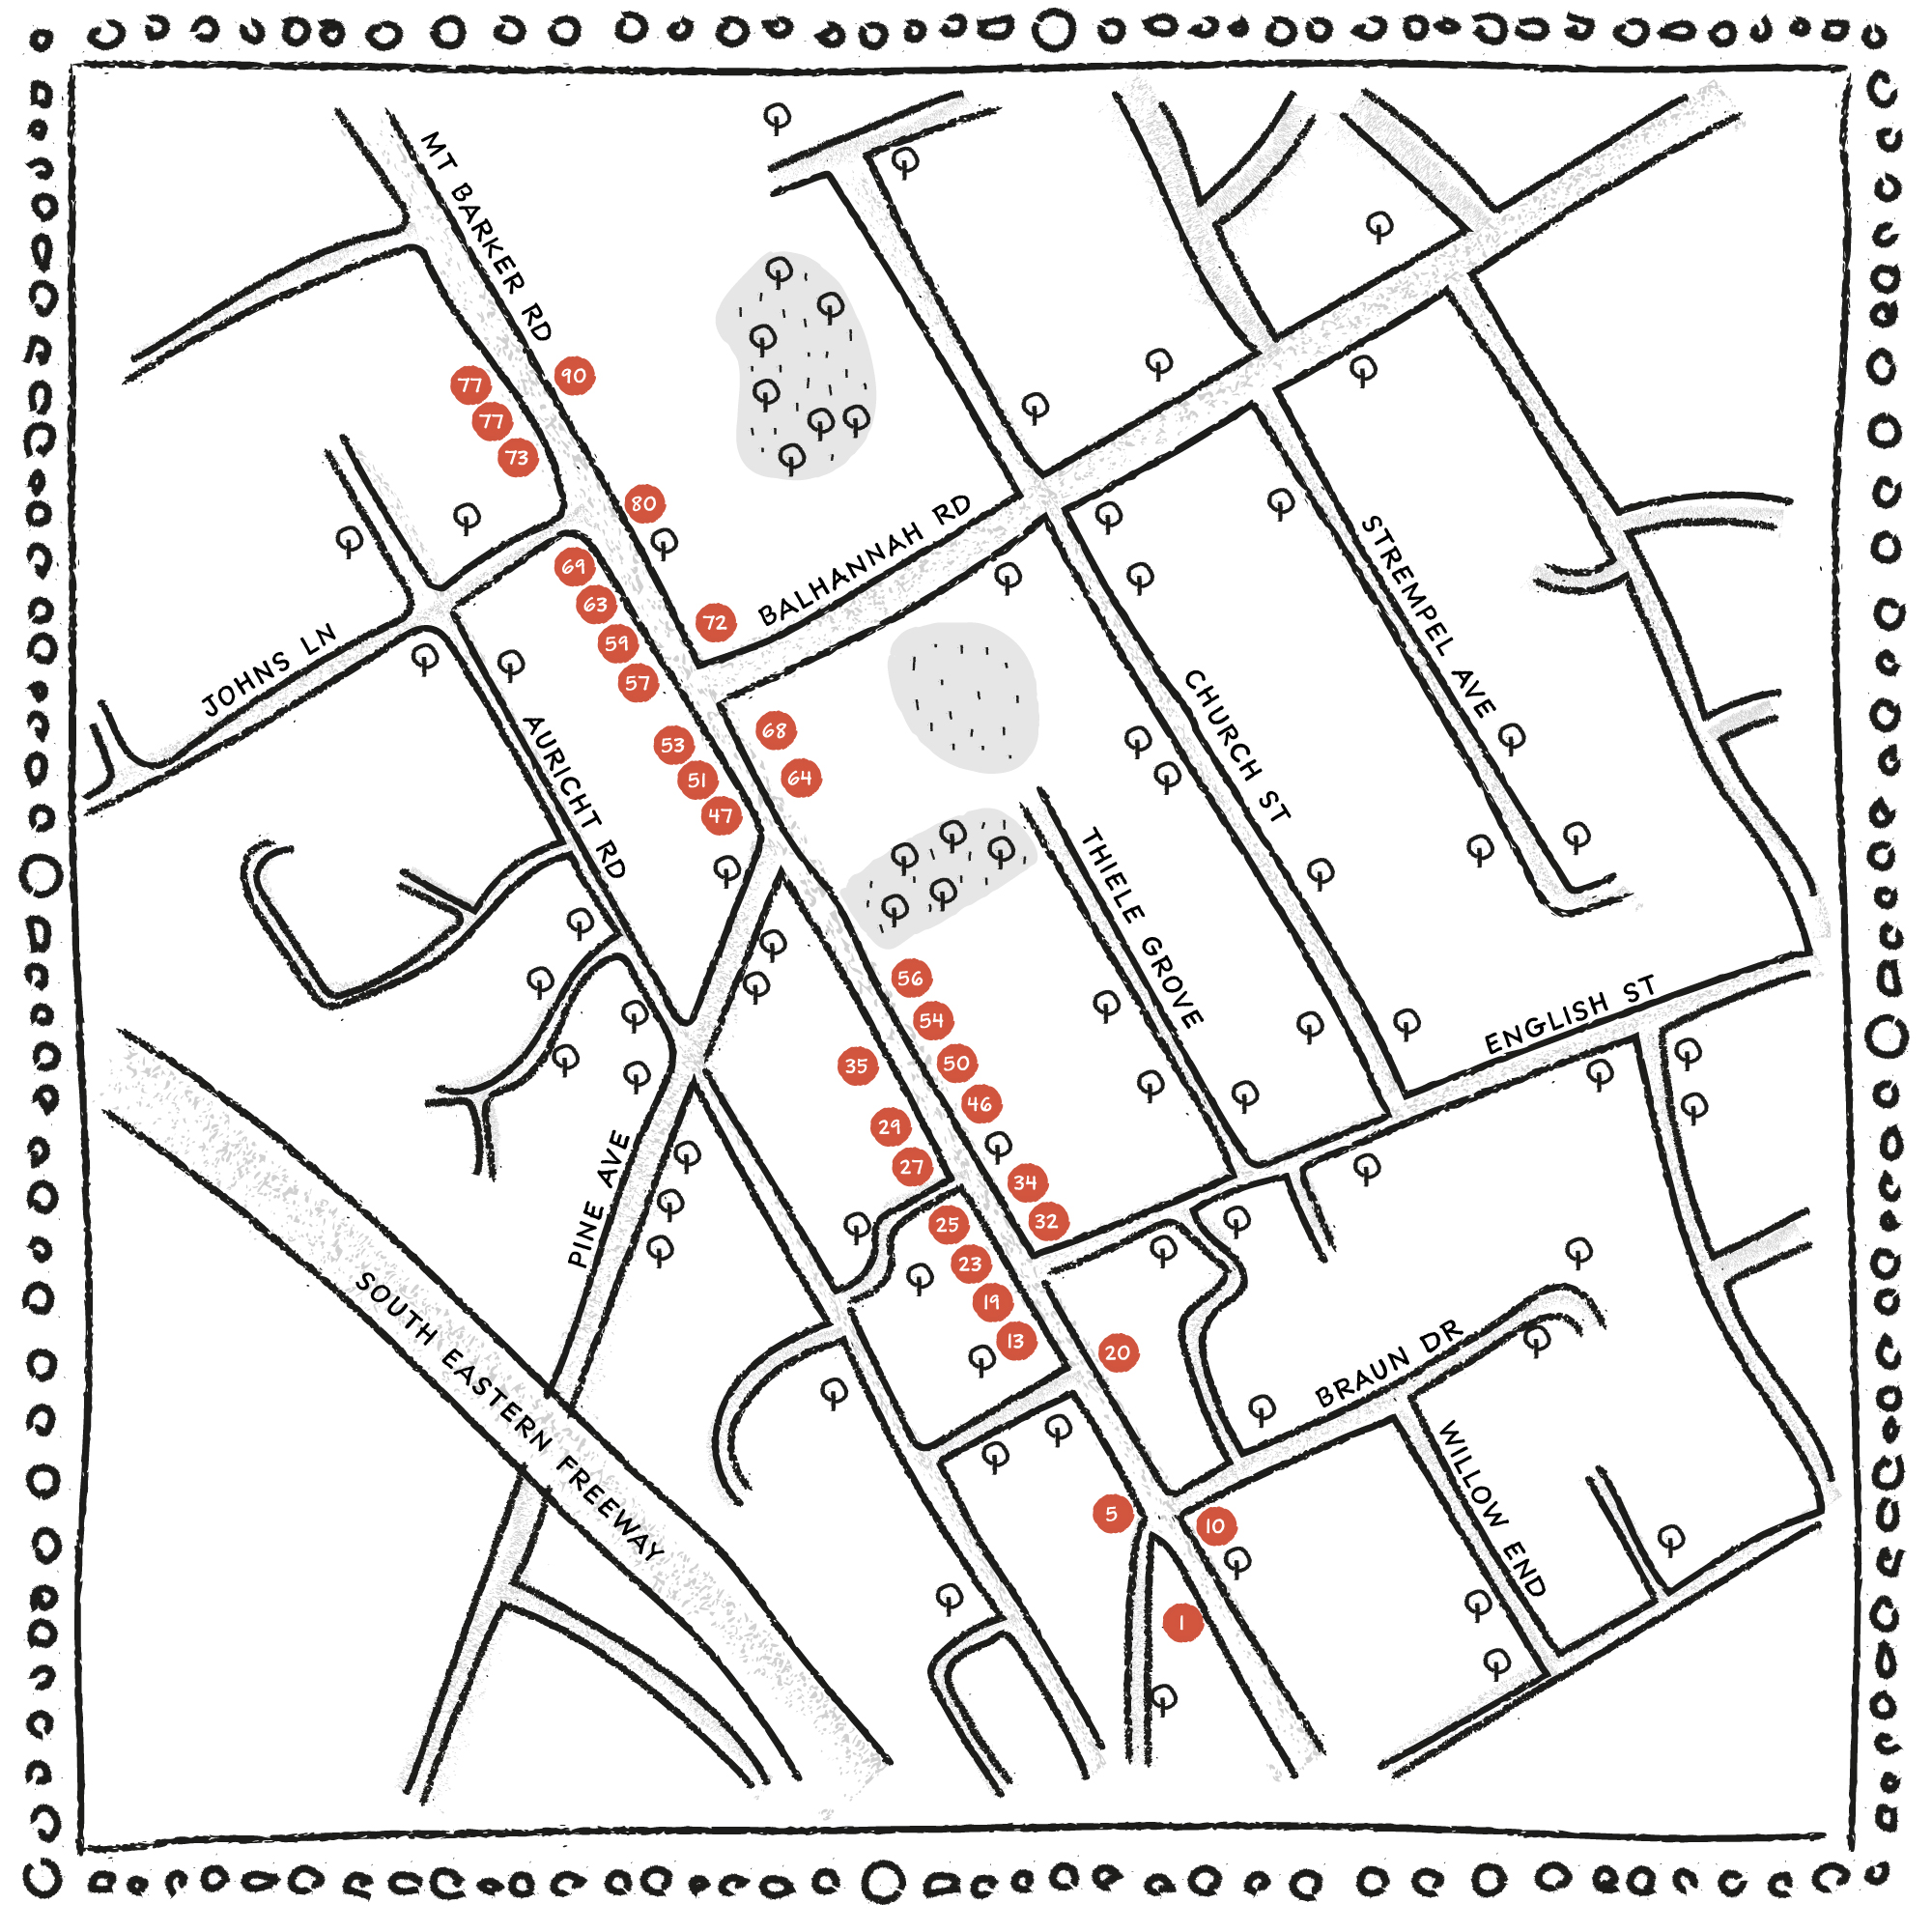 Illustrated street map of Hahndorf